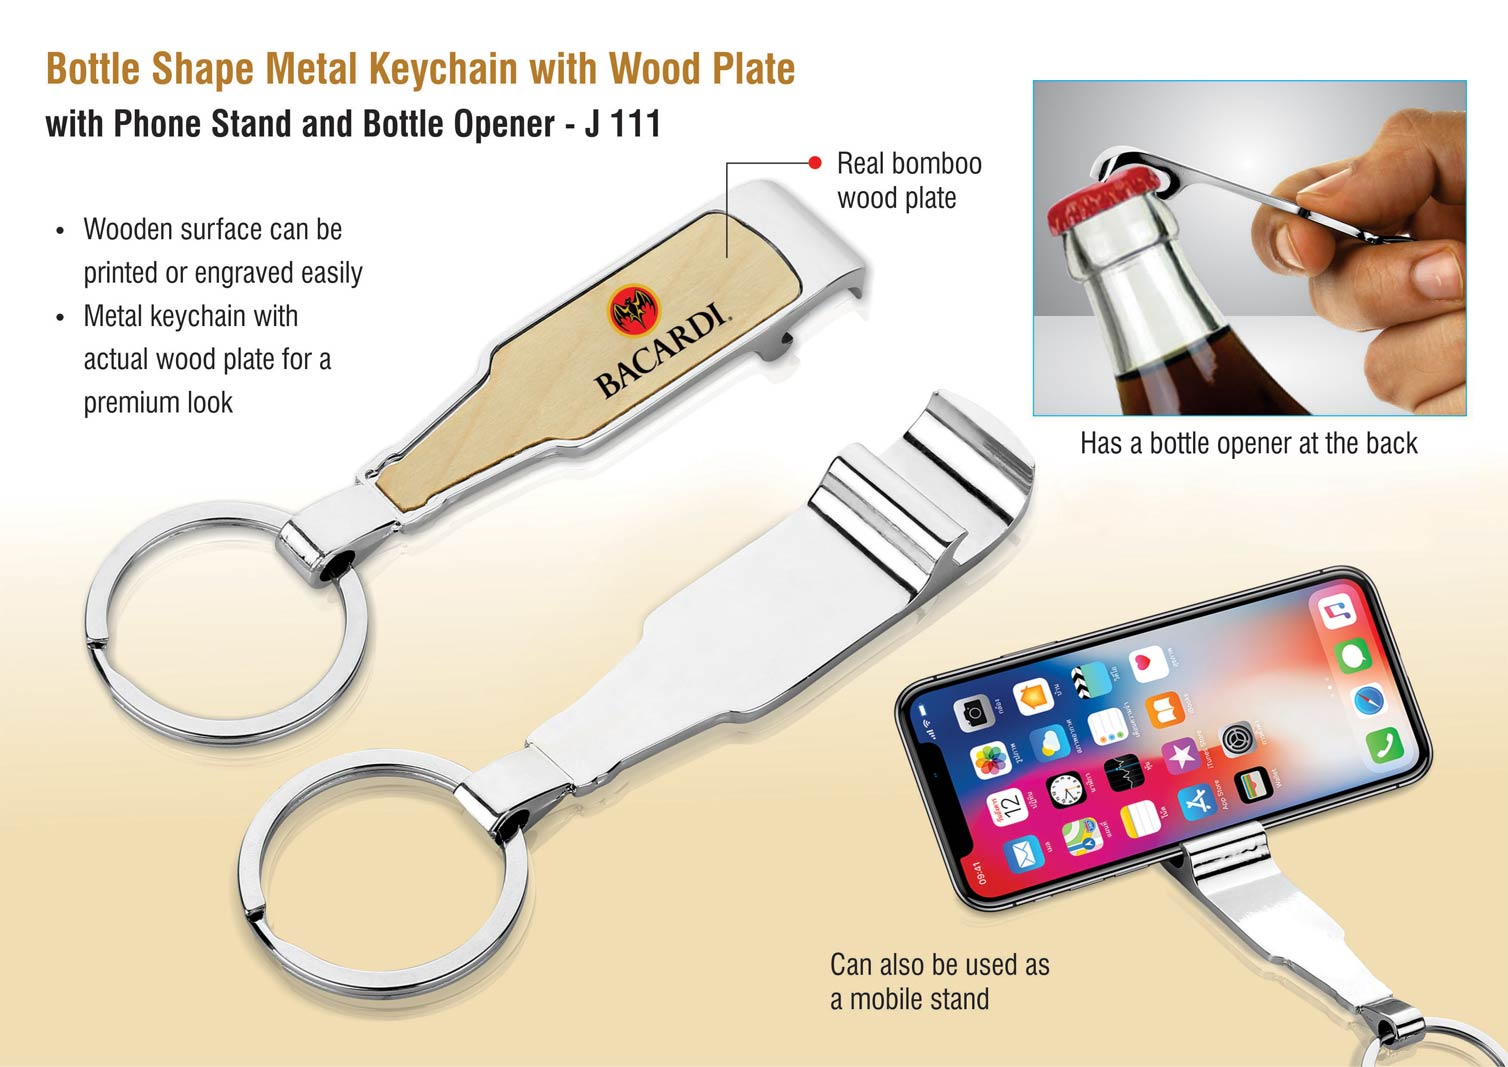 J111 - Bottle shape metal keychain with wood plate | with Phone stand and Bottle opener